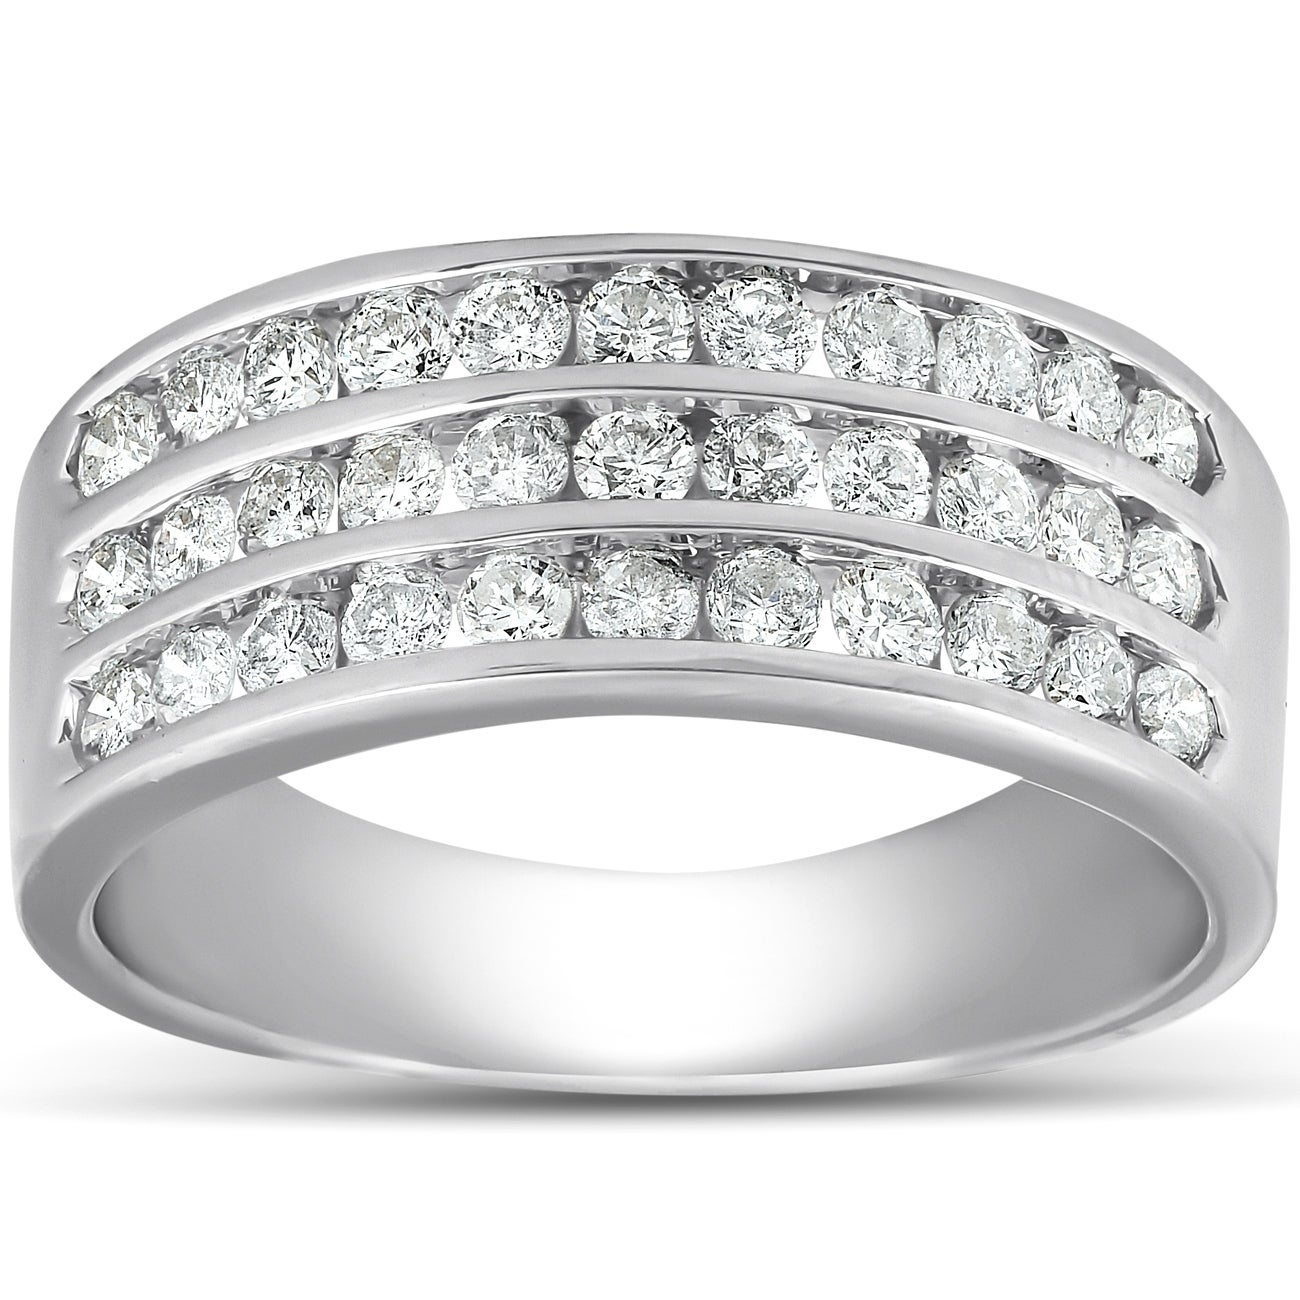 Pompeii3 10K White Gold 1 Ct Tdw Diamond Three Row Channel Set Wedding Ring  Womens Anniversary Band With Regard To Most Current Diamond Channel Set Anniversary Bands In Gold (Gallery 8 of 25)